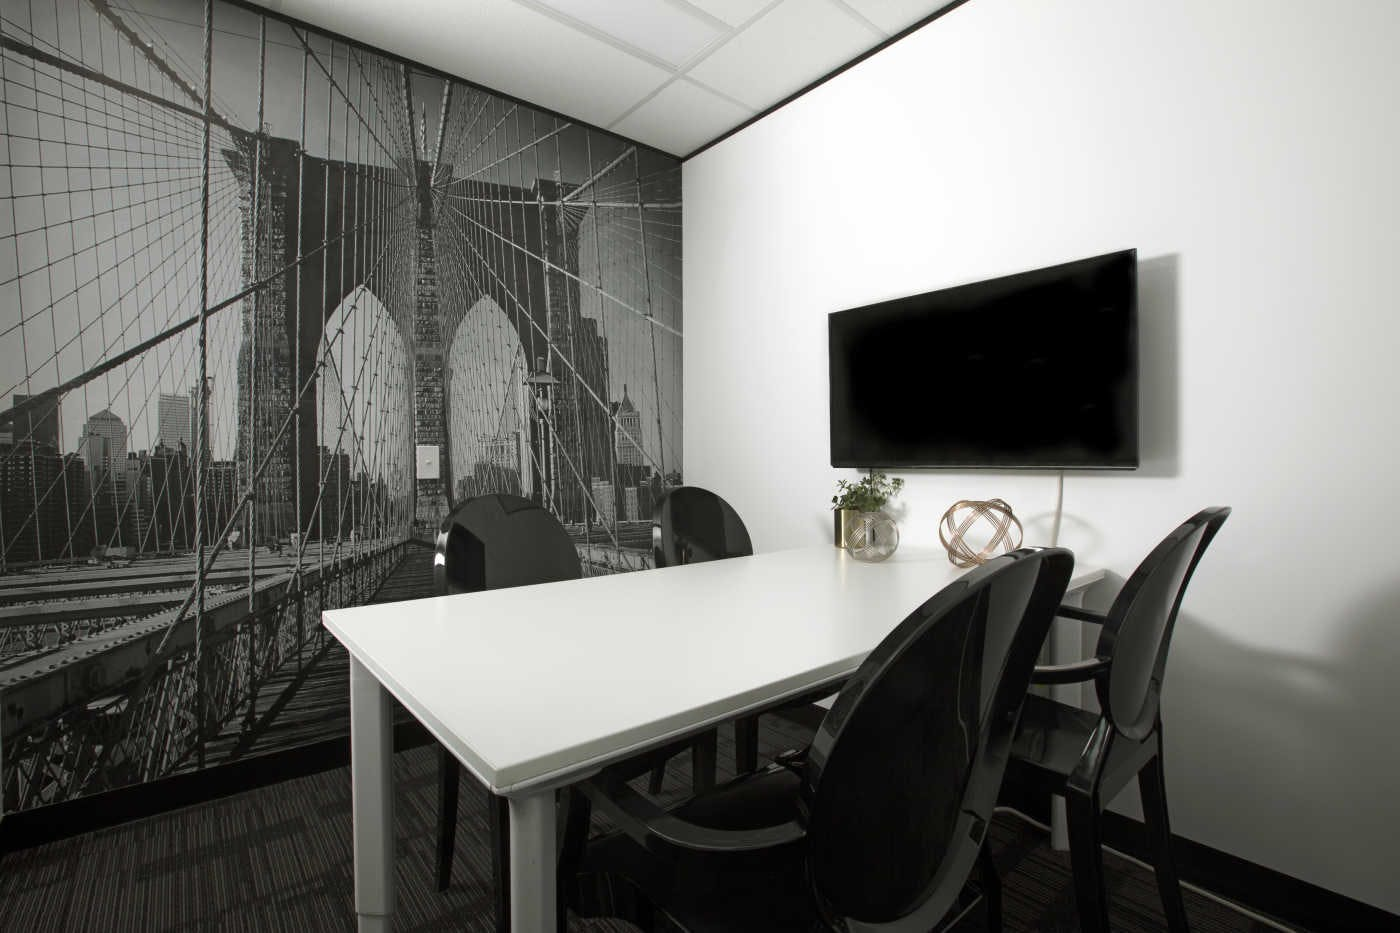 Meeting Room, meeting room at Anytime Offices, image 5